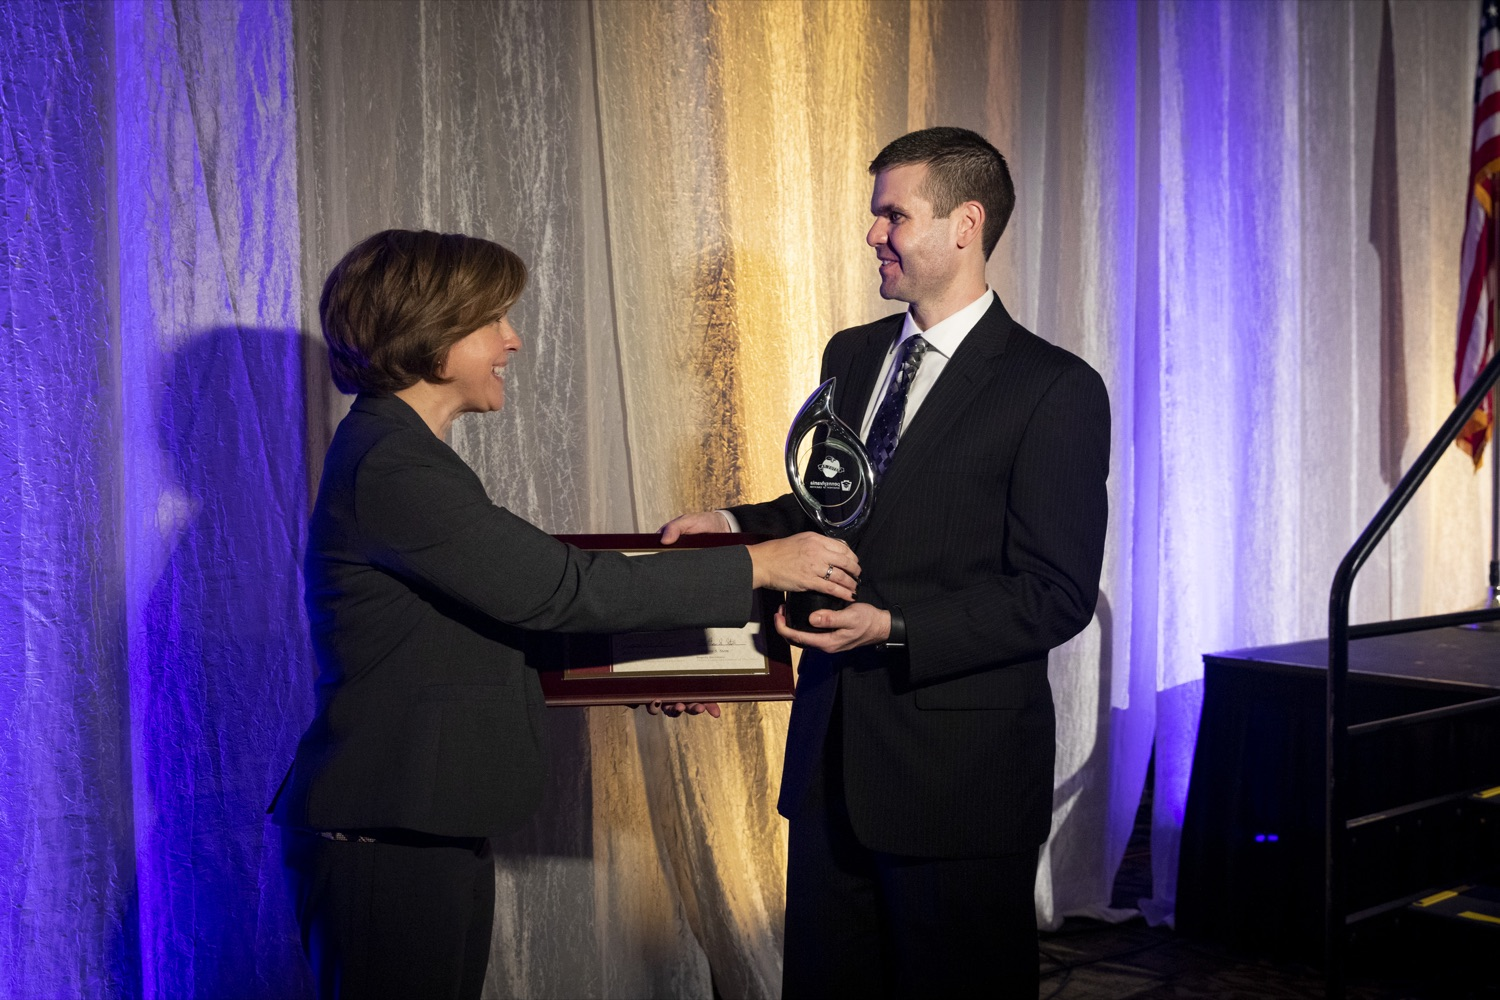 "<a href=""https://filesource.wostreaming.net/commonwealthofpa/photo/17584_pde_teacher_award_16.JPG"" target=""_blank"">⇣ Download Photo<br></a>The 2019 Pennsylvania Teacher of the Year Marilyn Pryle passes the award to the 2020 Pennsylvania Teacher of the Year Joseph Welch at the Hershey Lodge in Hershey on December 9, 2019."